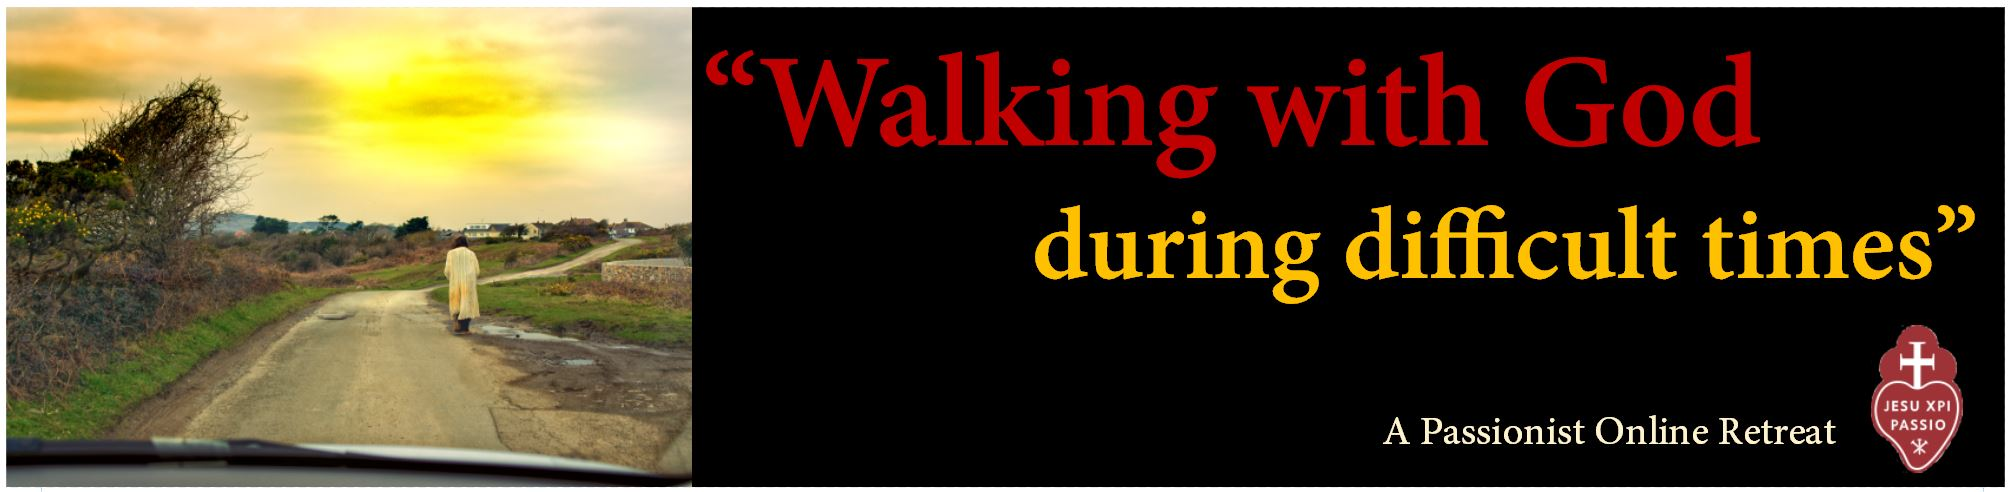 Walking with God Banner